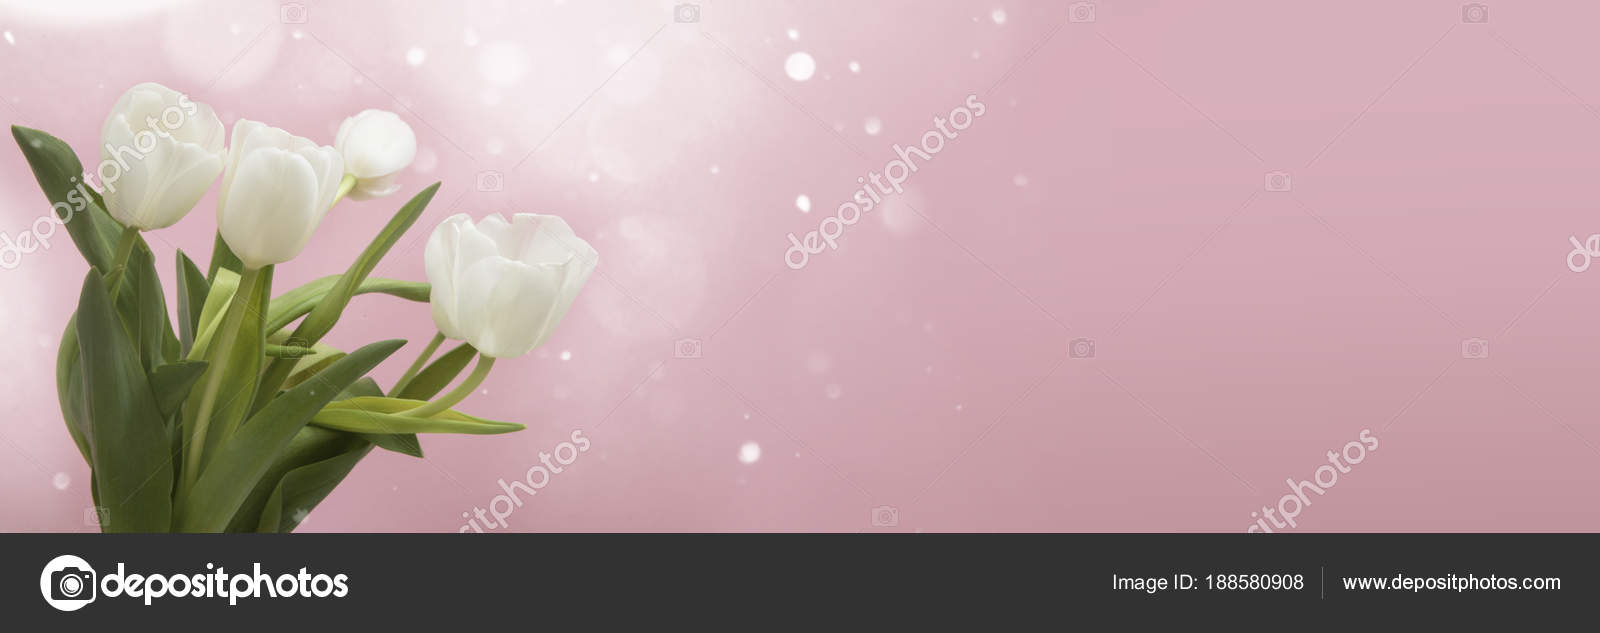 Tulip Flowers Header Stock Photo C Djemphoto 188580908